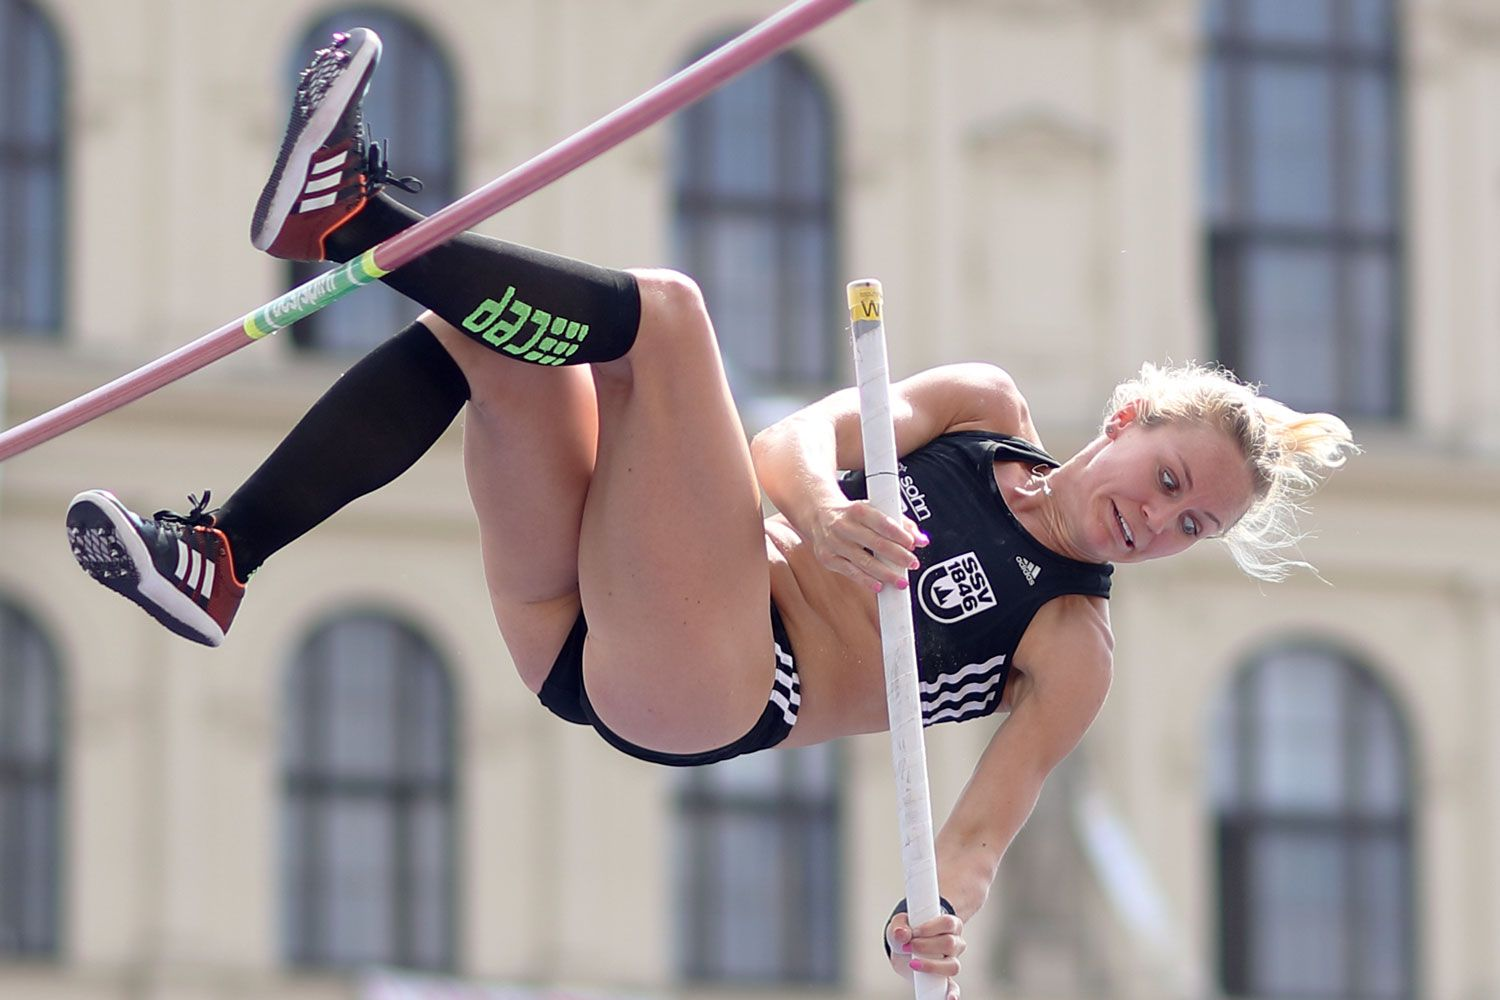 Pole Vault of Prague - Women 15